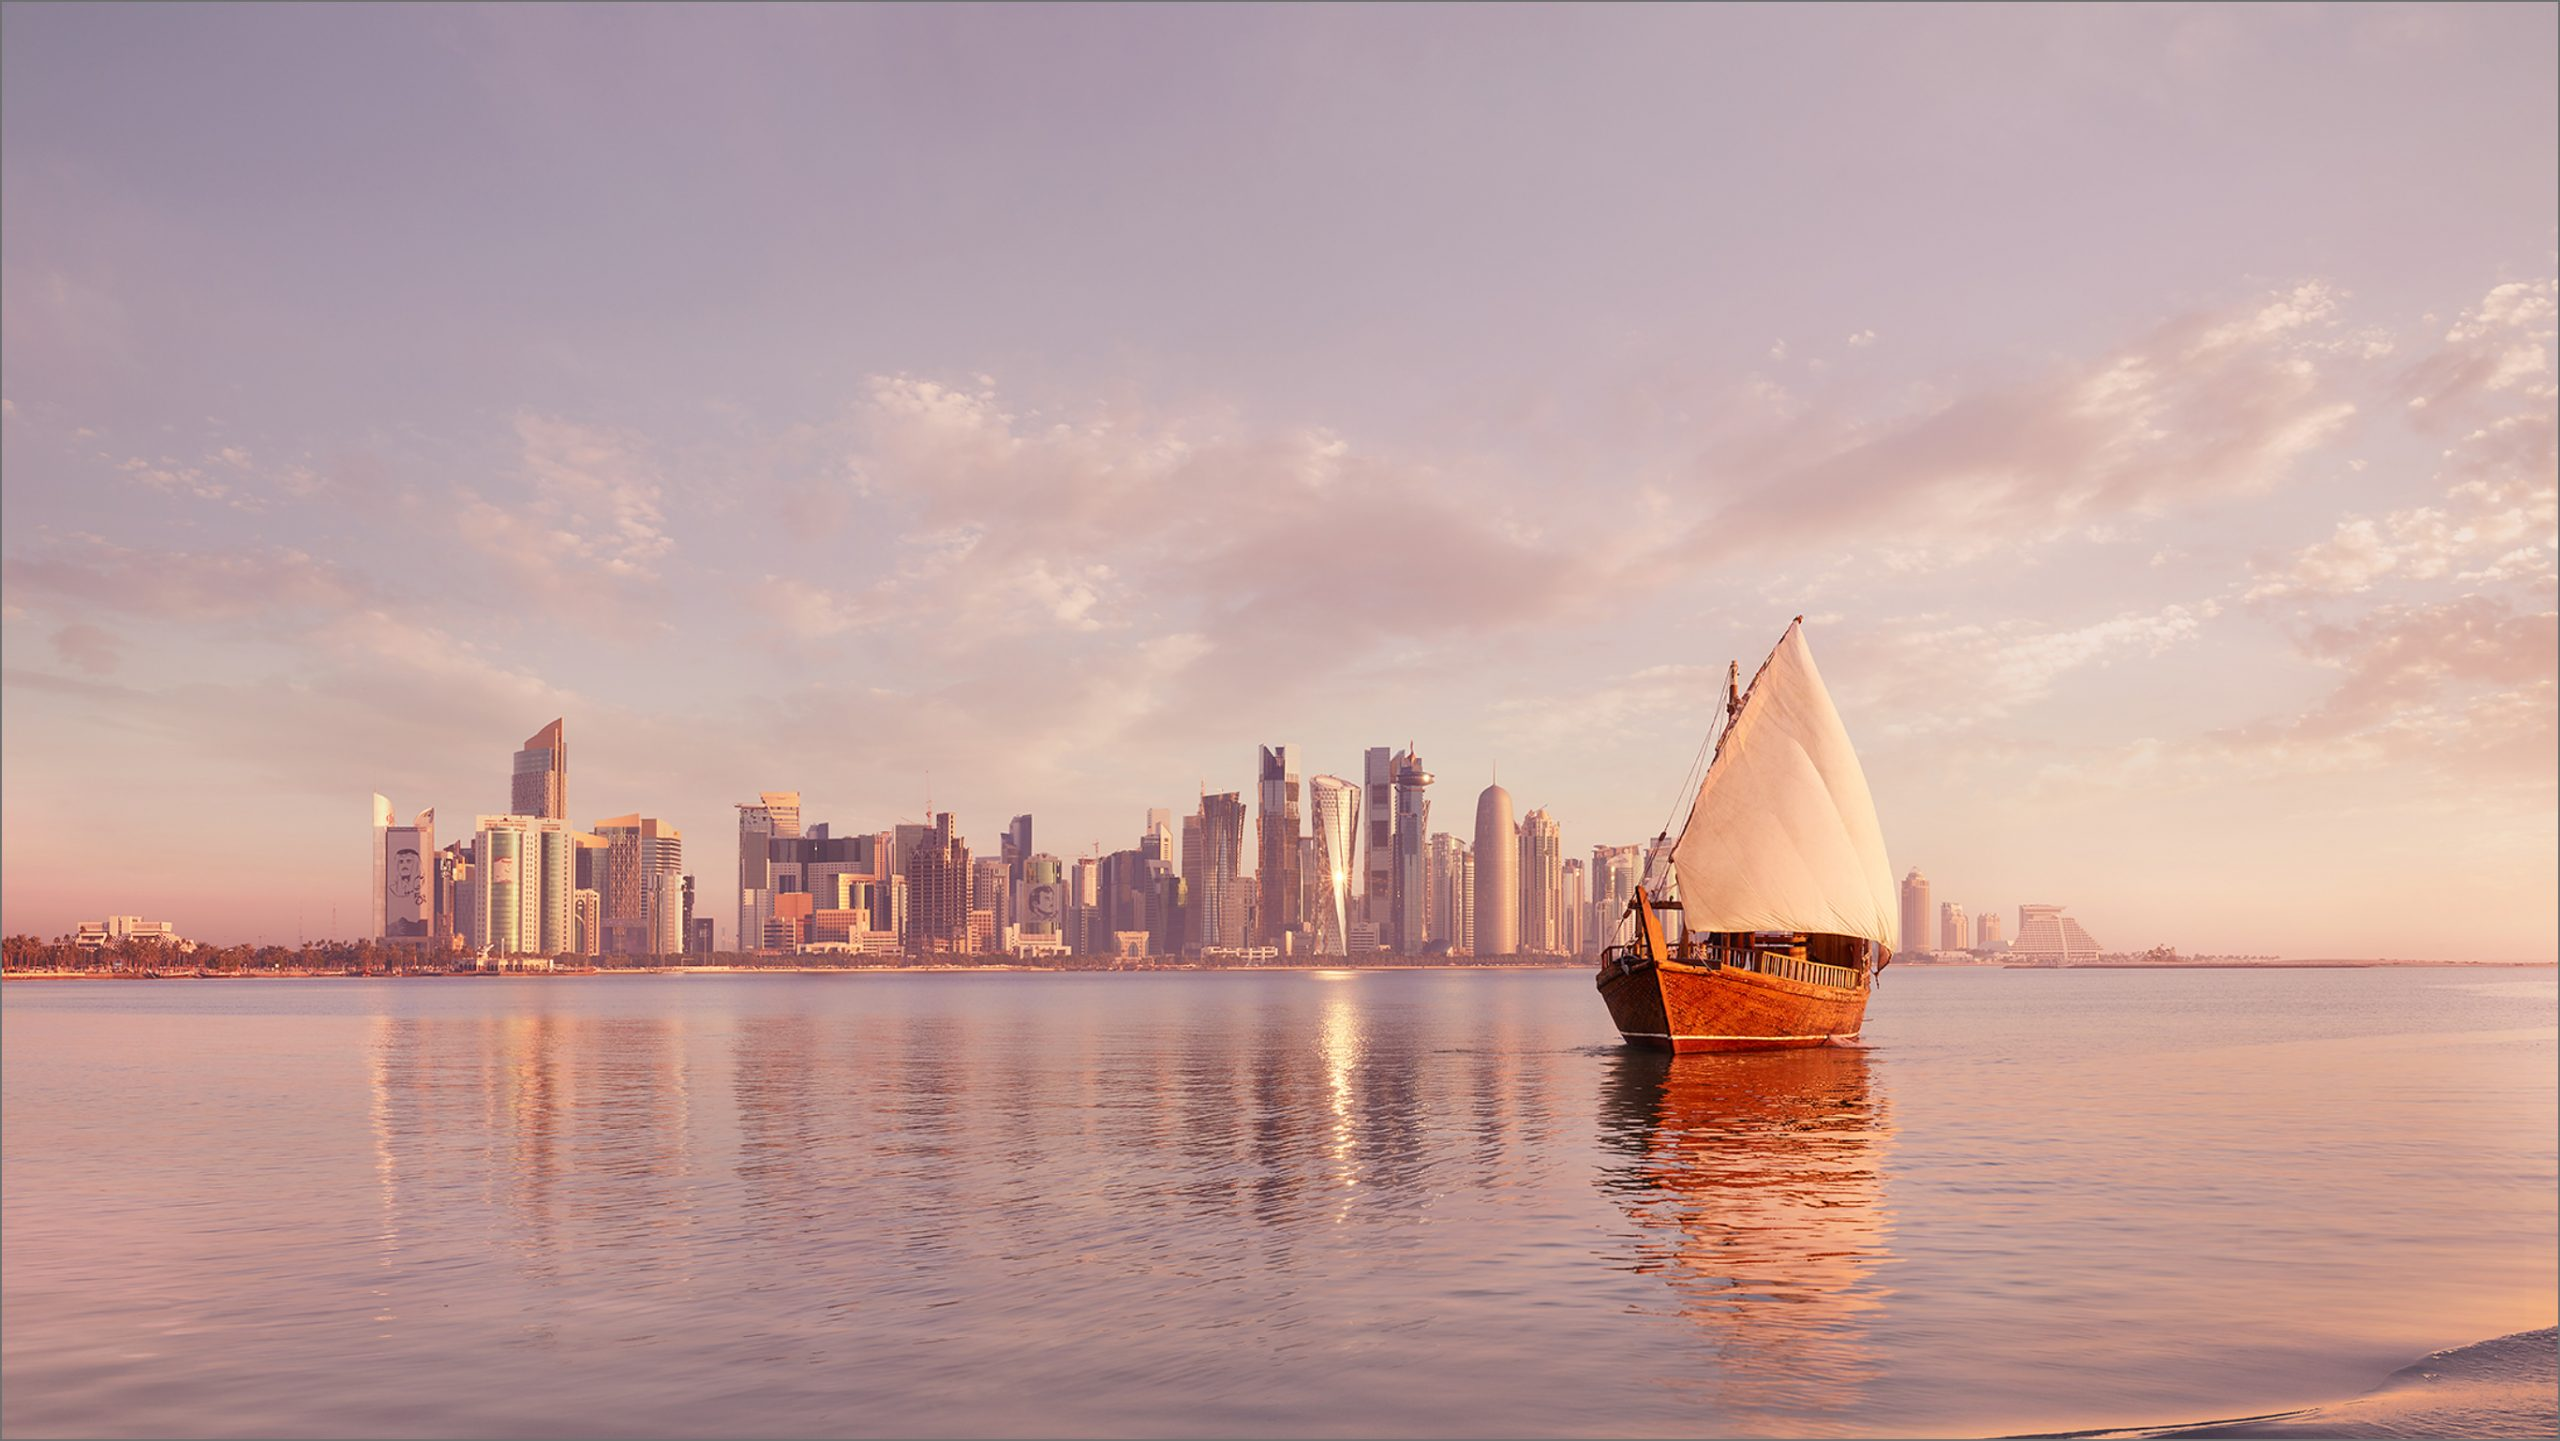 Discover Qatar launches its first expedition cruise